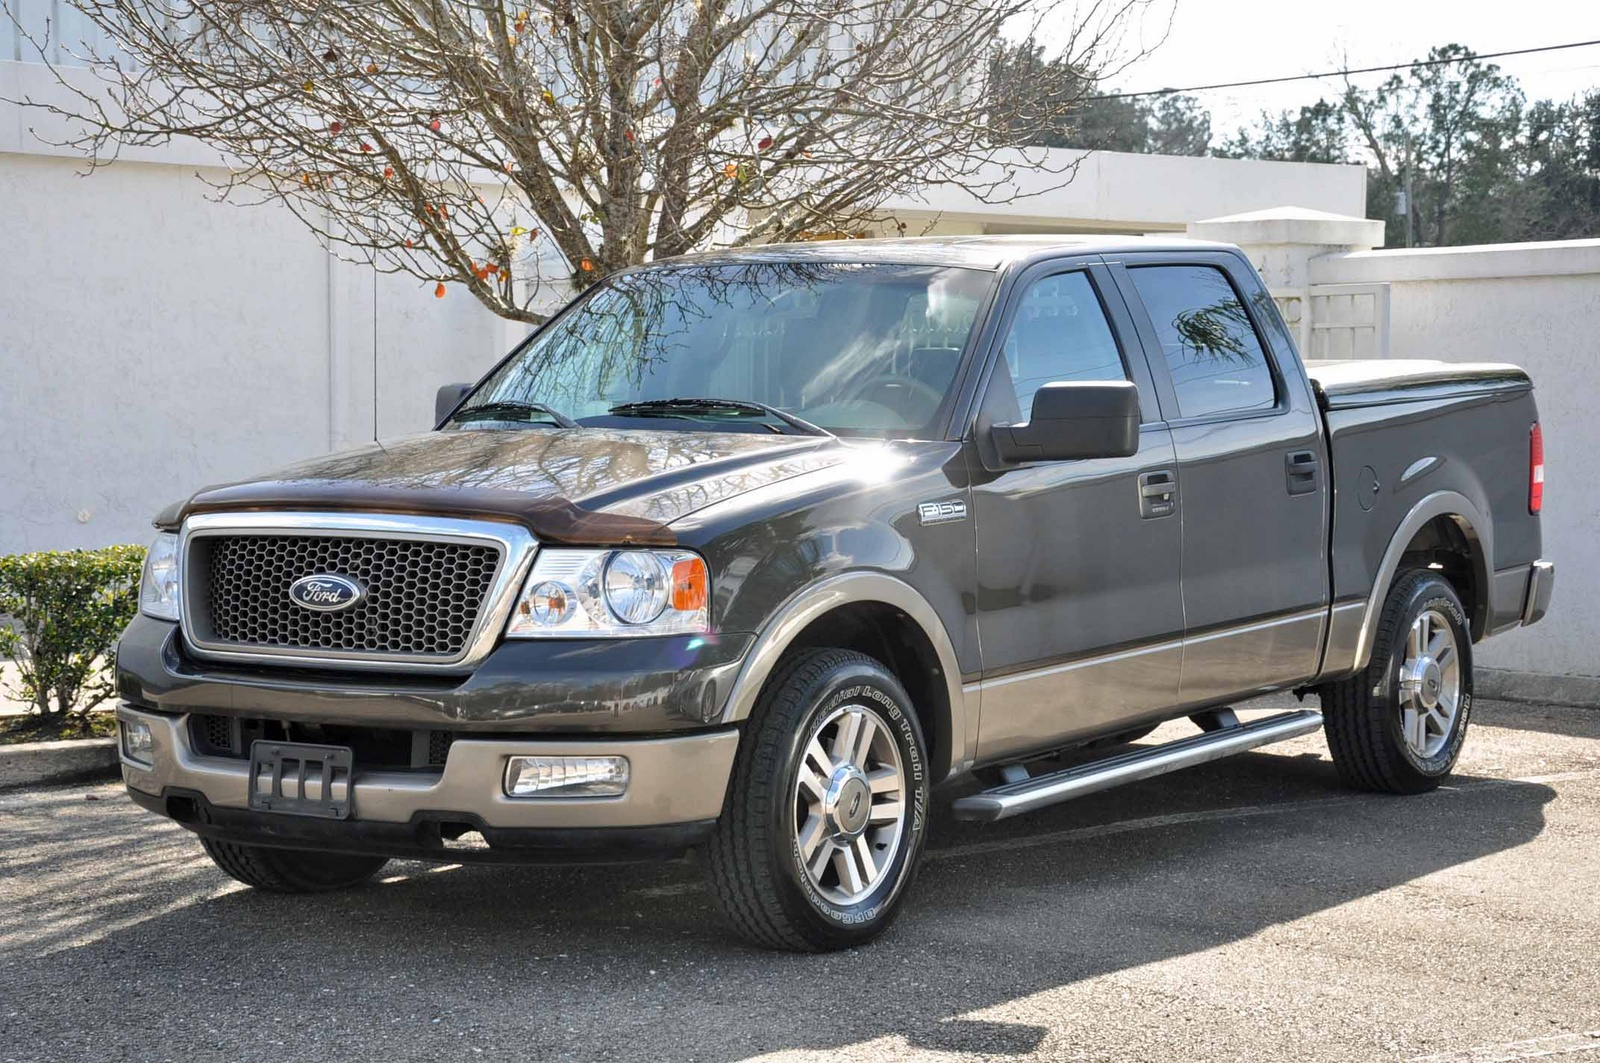 2005 Ford F-150 - Exterior Pictures